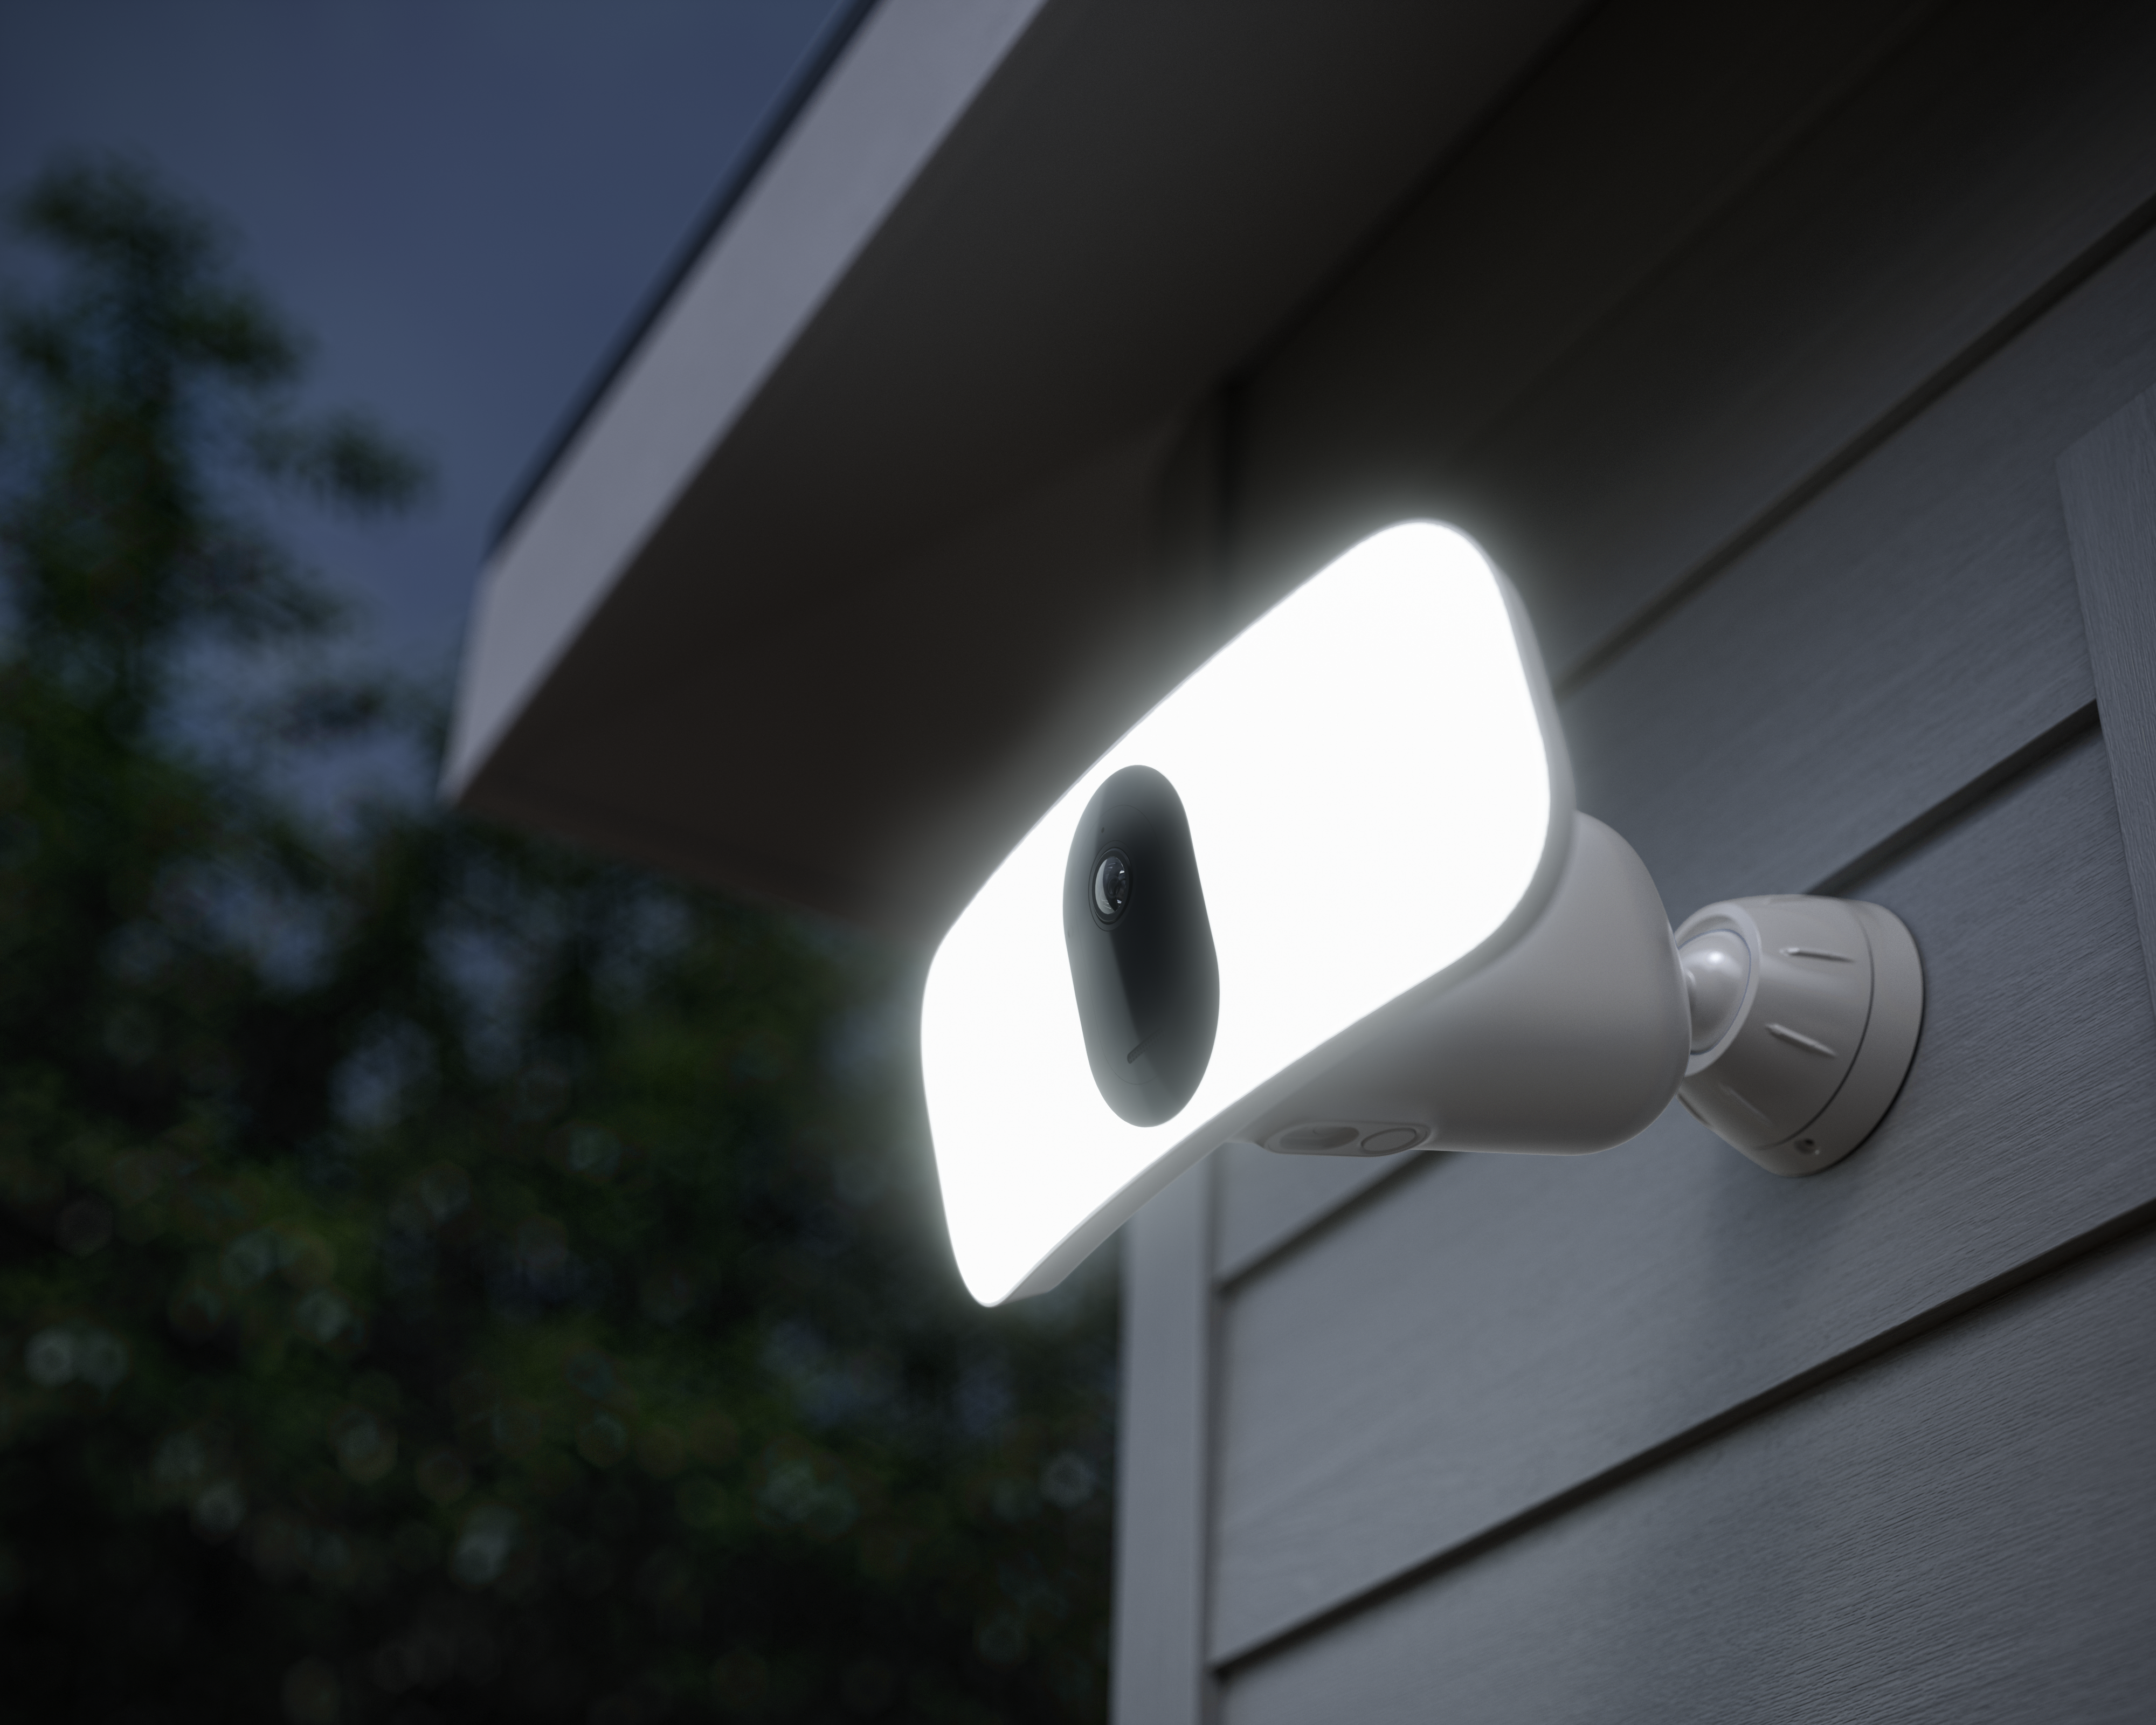 Arlo Pro 3 Floodlight Camera unveiled at CES